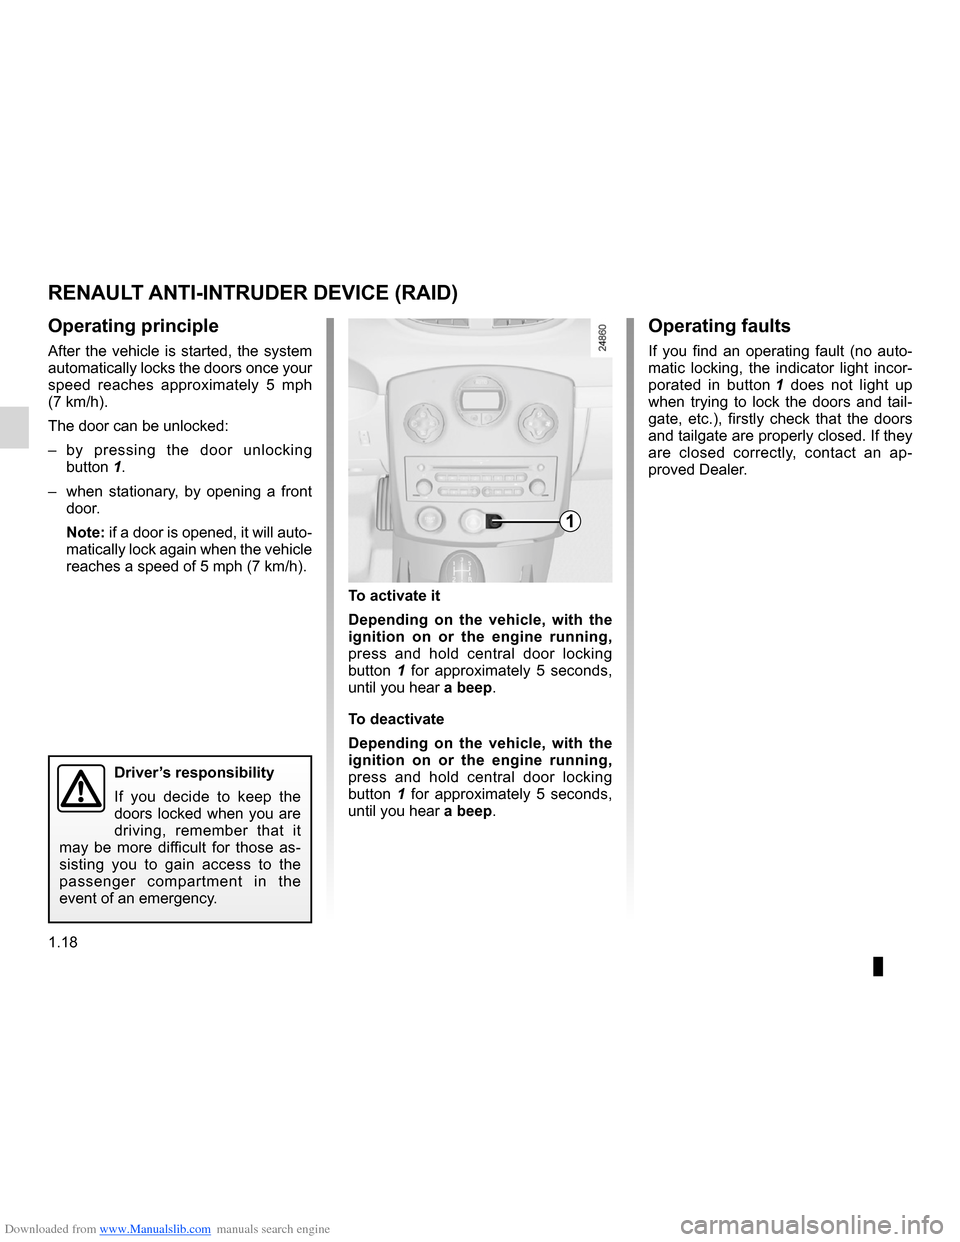 RENAULT CLIO 2012 X85 / 3.G Owners Manual, Page 24